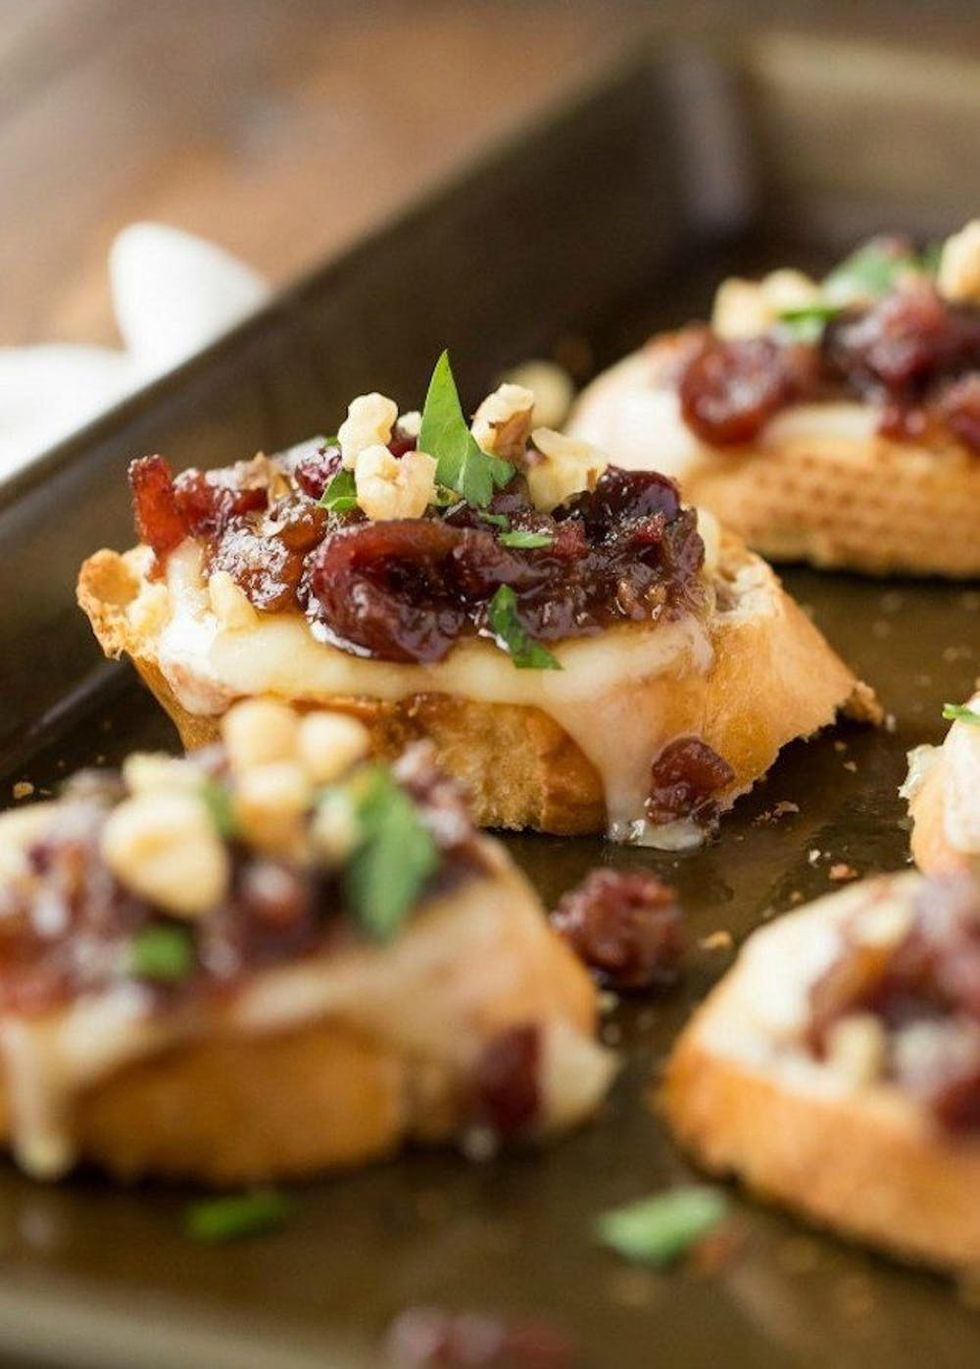 37 Easy Make Ahead Thanksgiving Appetizer Recipes To Make Your Day Easier Brit Co